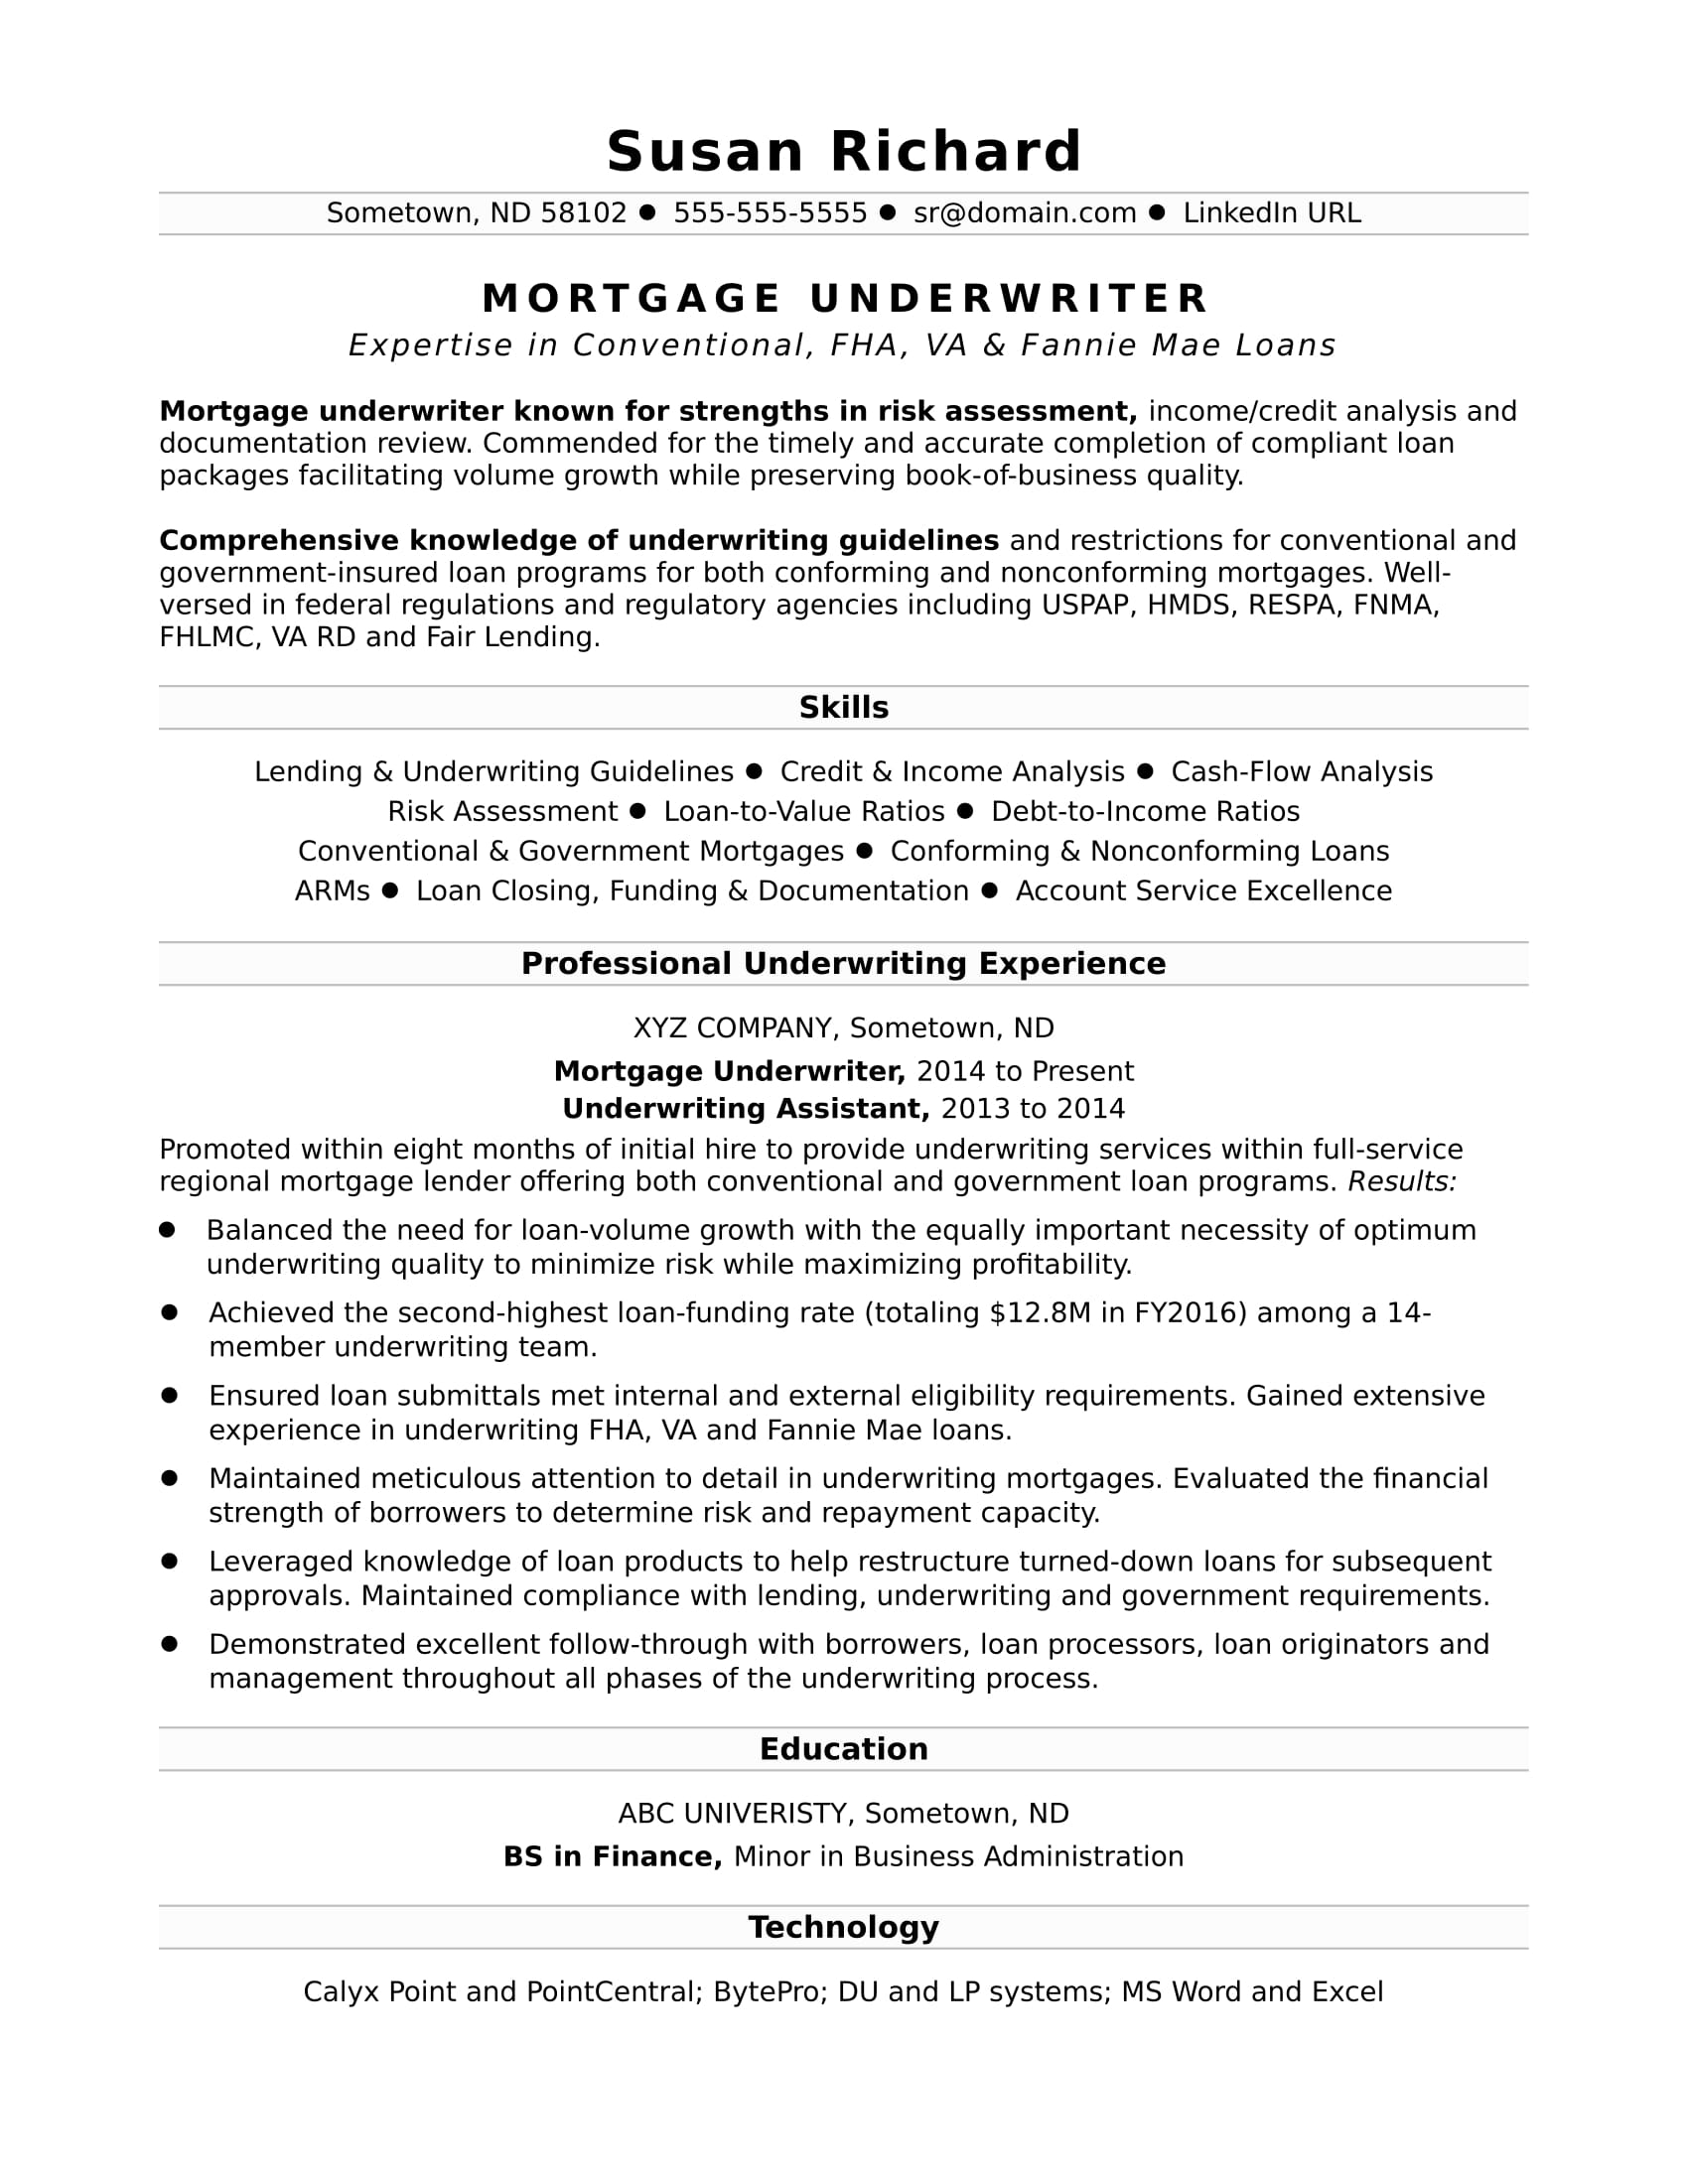 resume objective examples mortgage underwriter